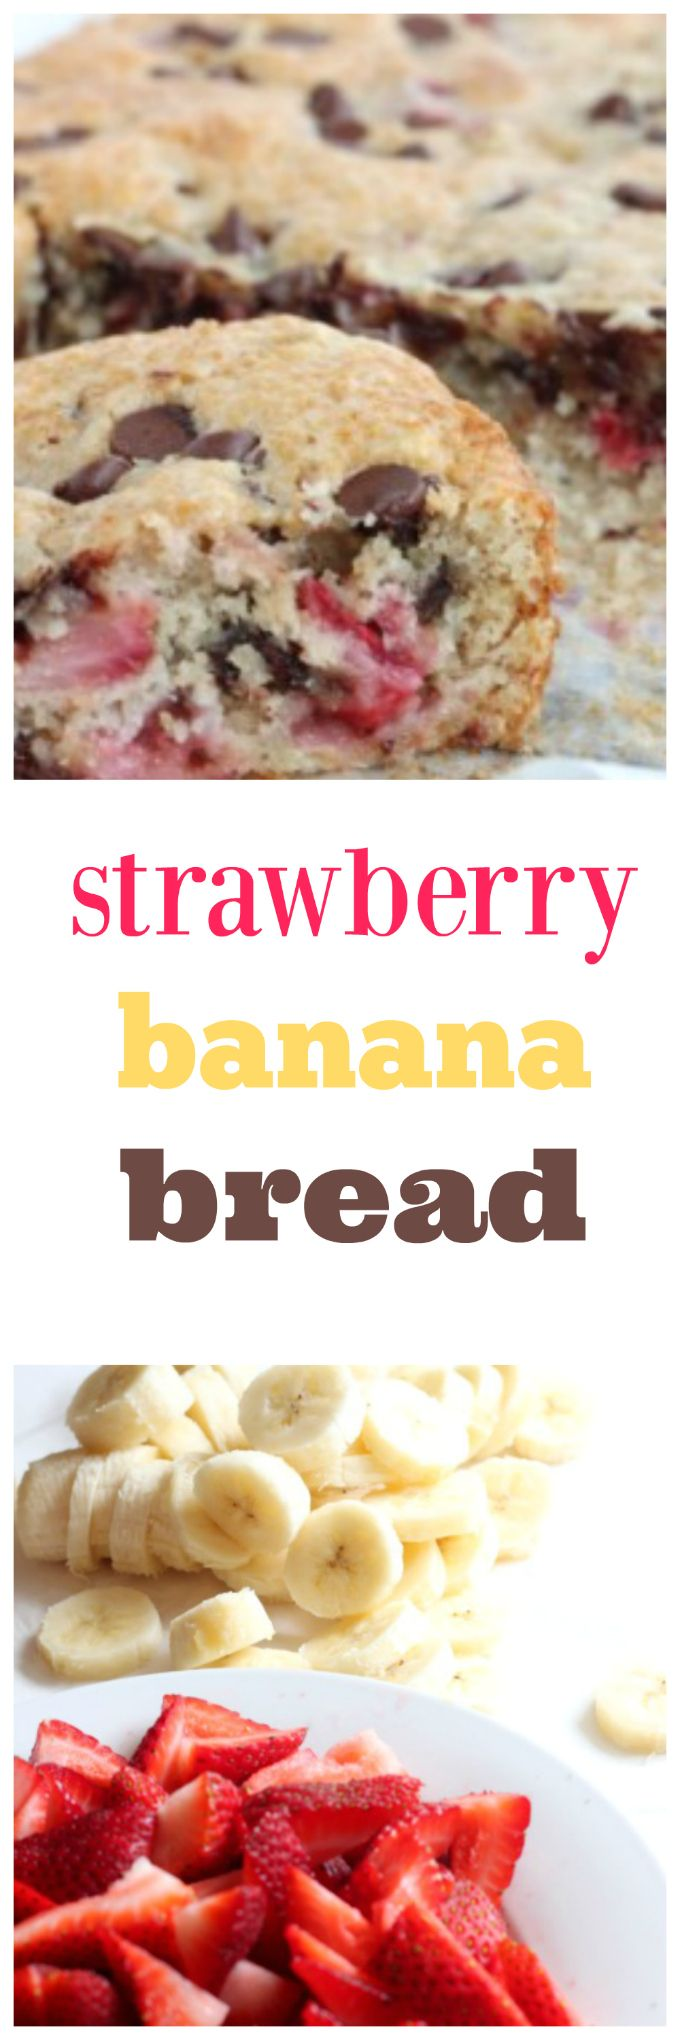 strawberry banana bread @createdbydiane